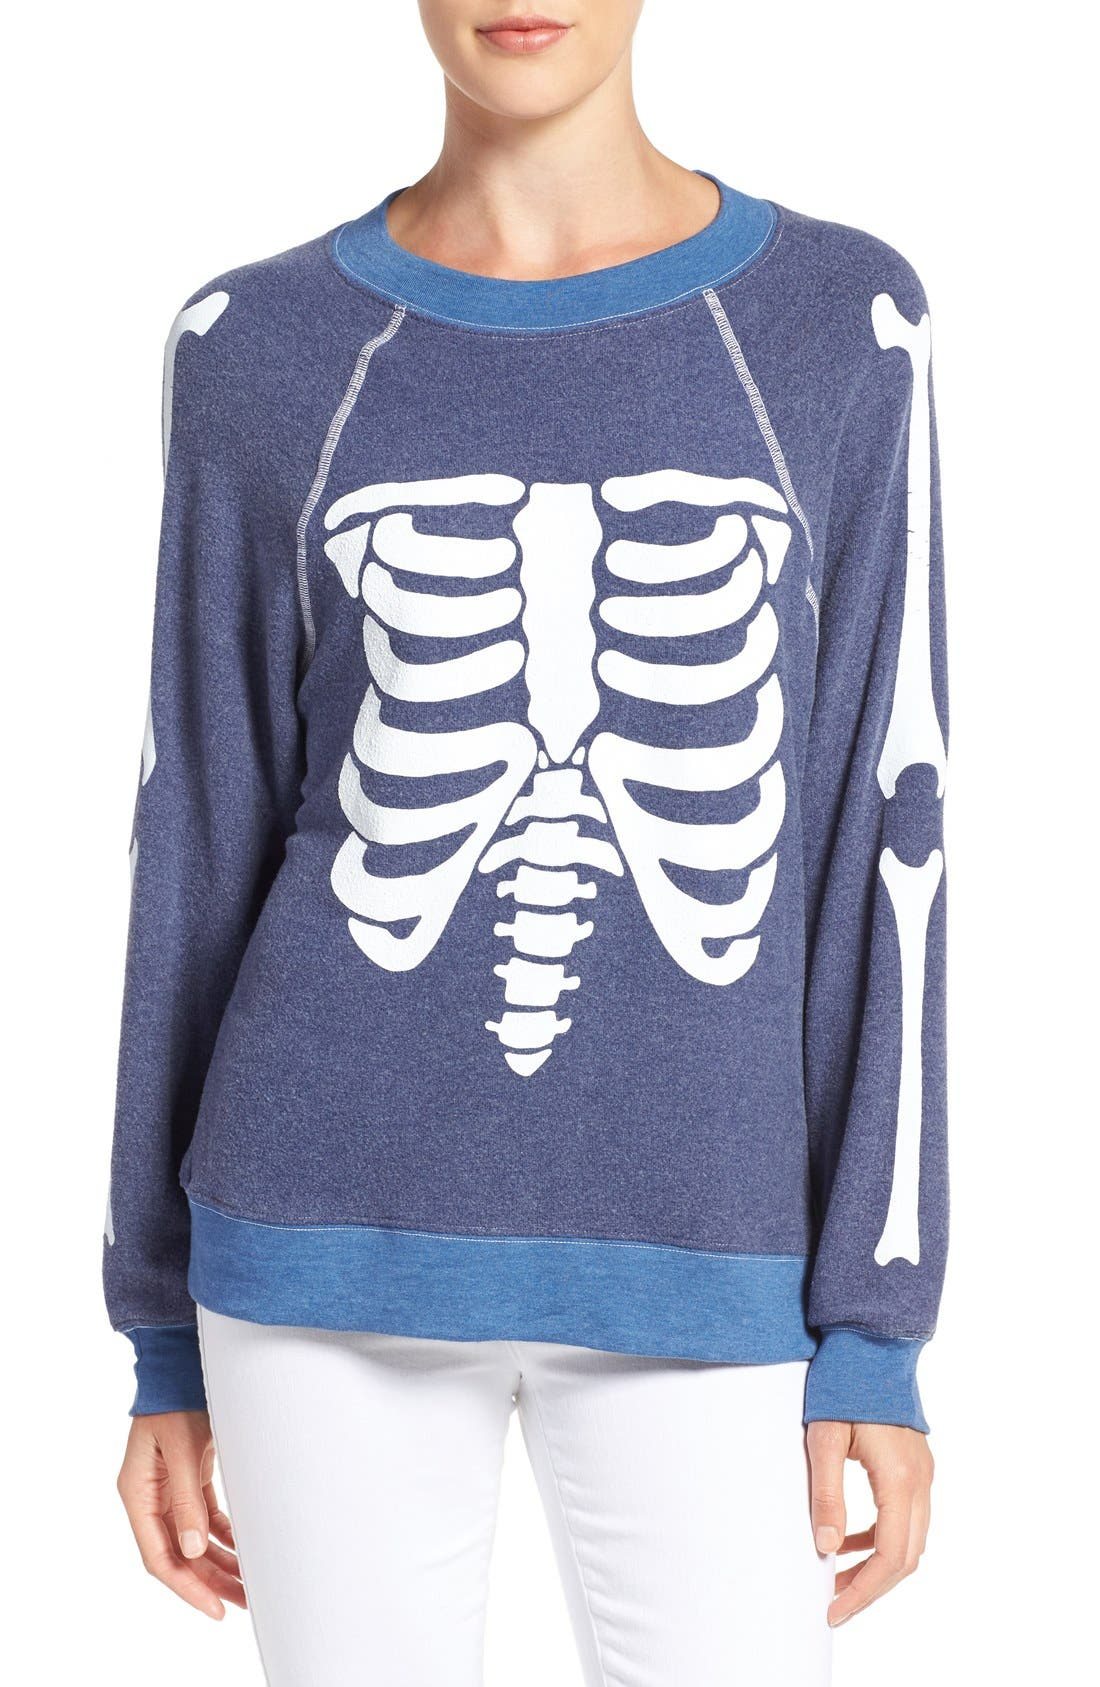 'Inside Out' Skeleton Print Pullover,                             Main thumbnail 1, color,                             401